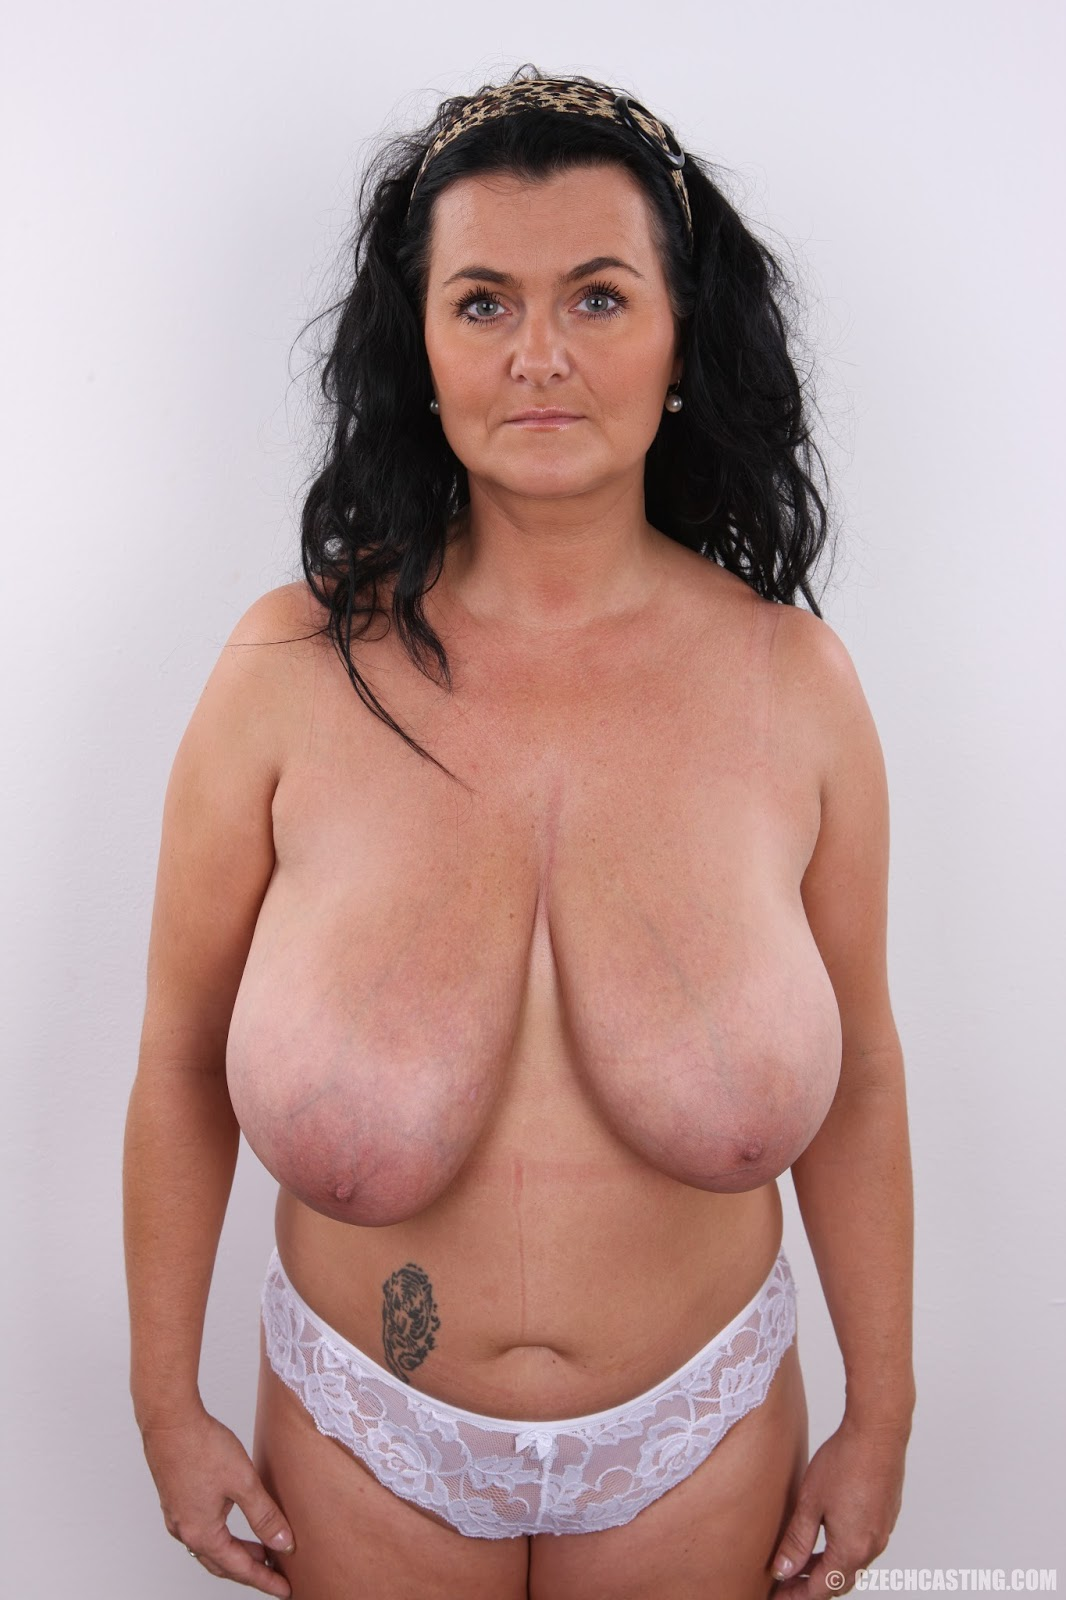 Hot bigtits wife standing doggystyle 2 boltonwife - 1 7